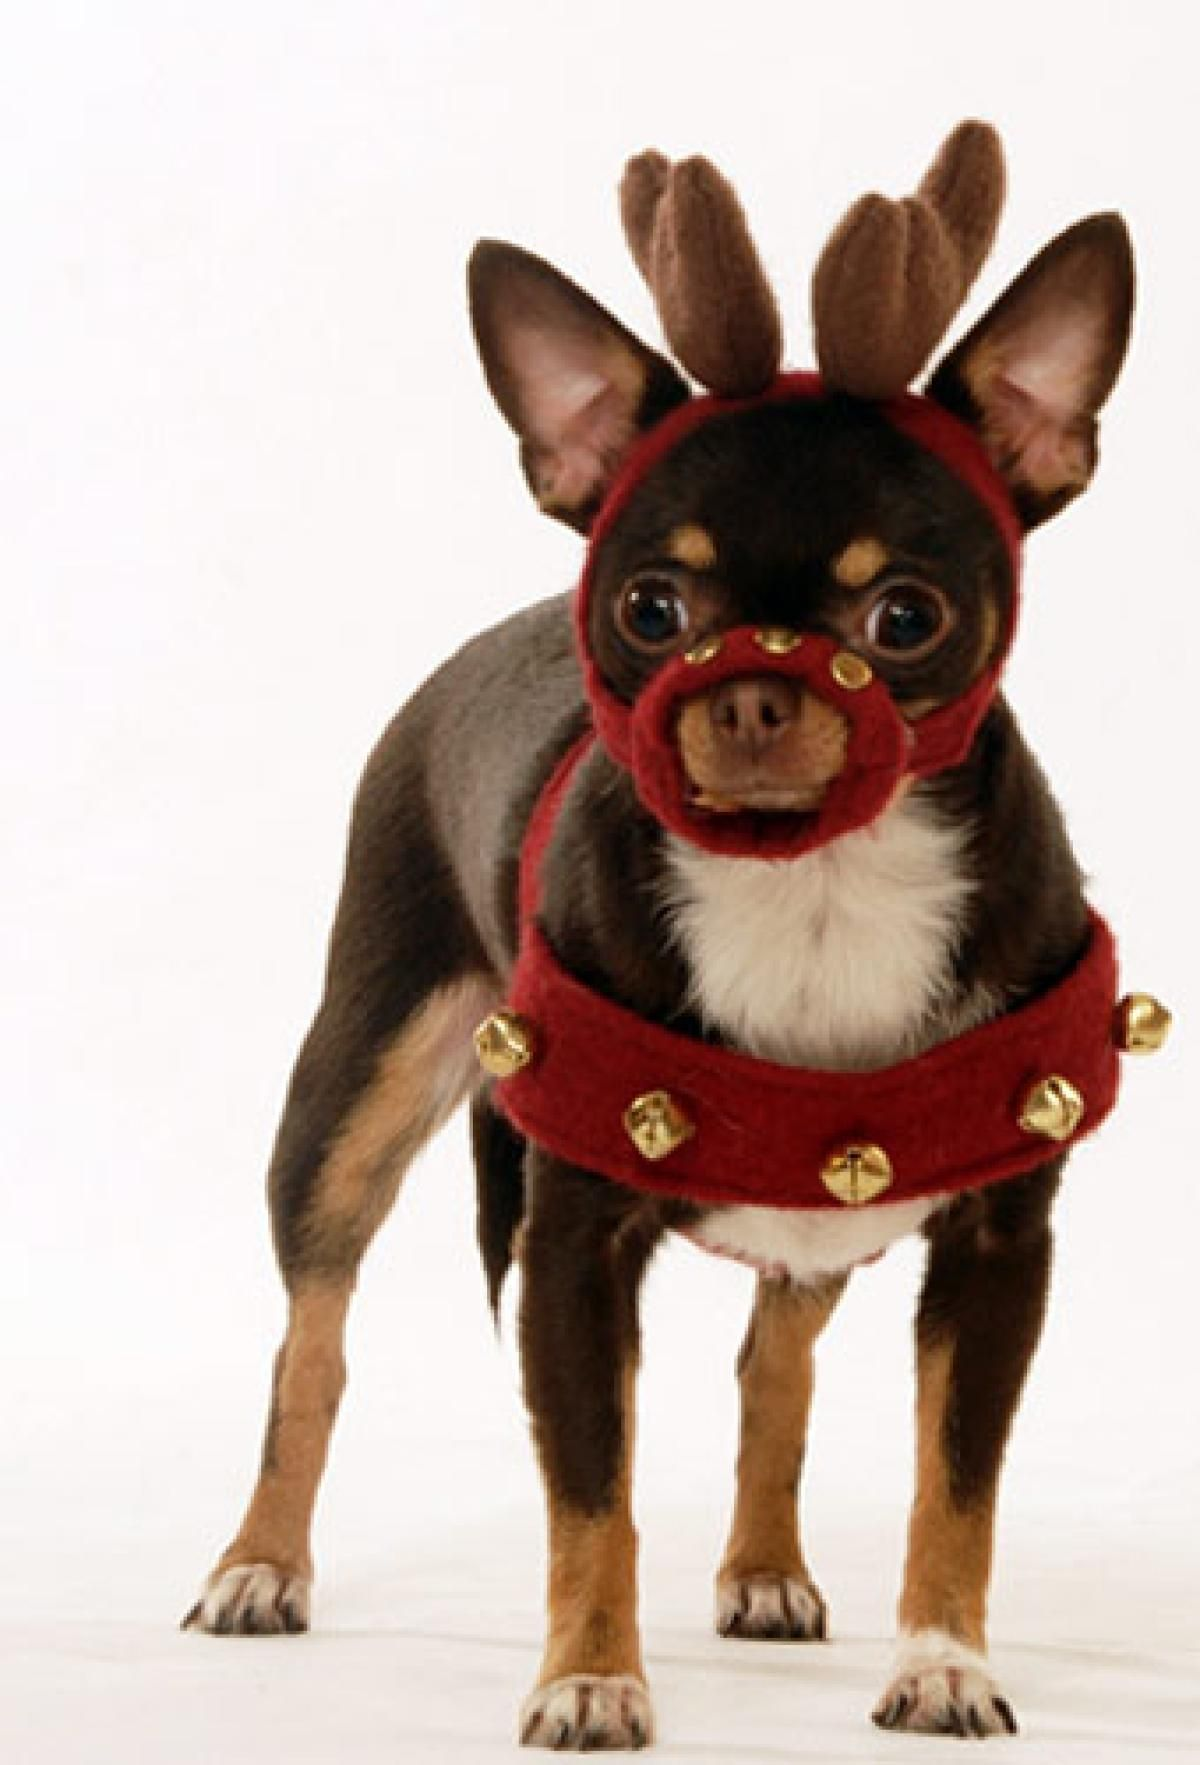 This is Manhattan dog Coco Chanel in her Reindeer Costume.